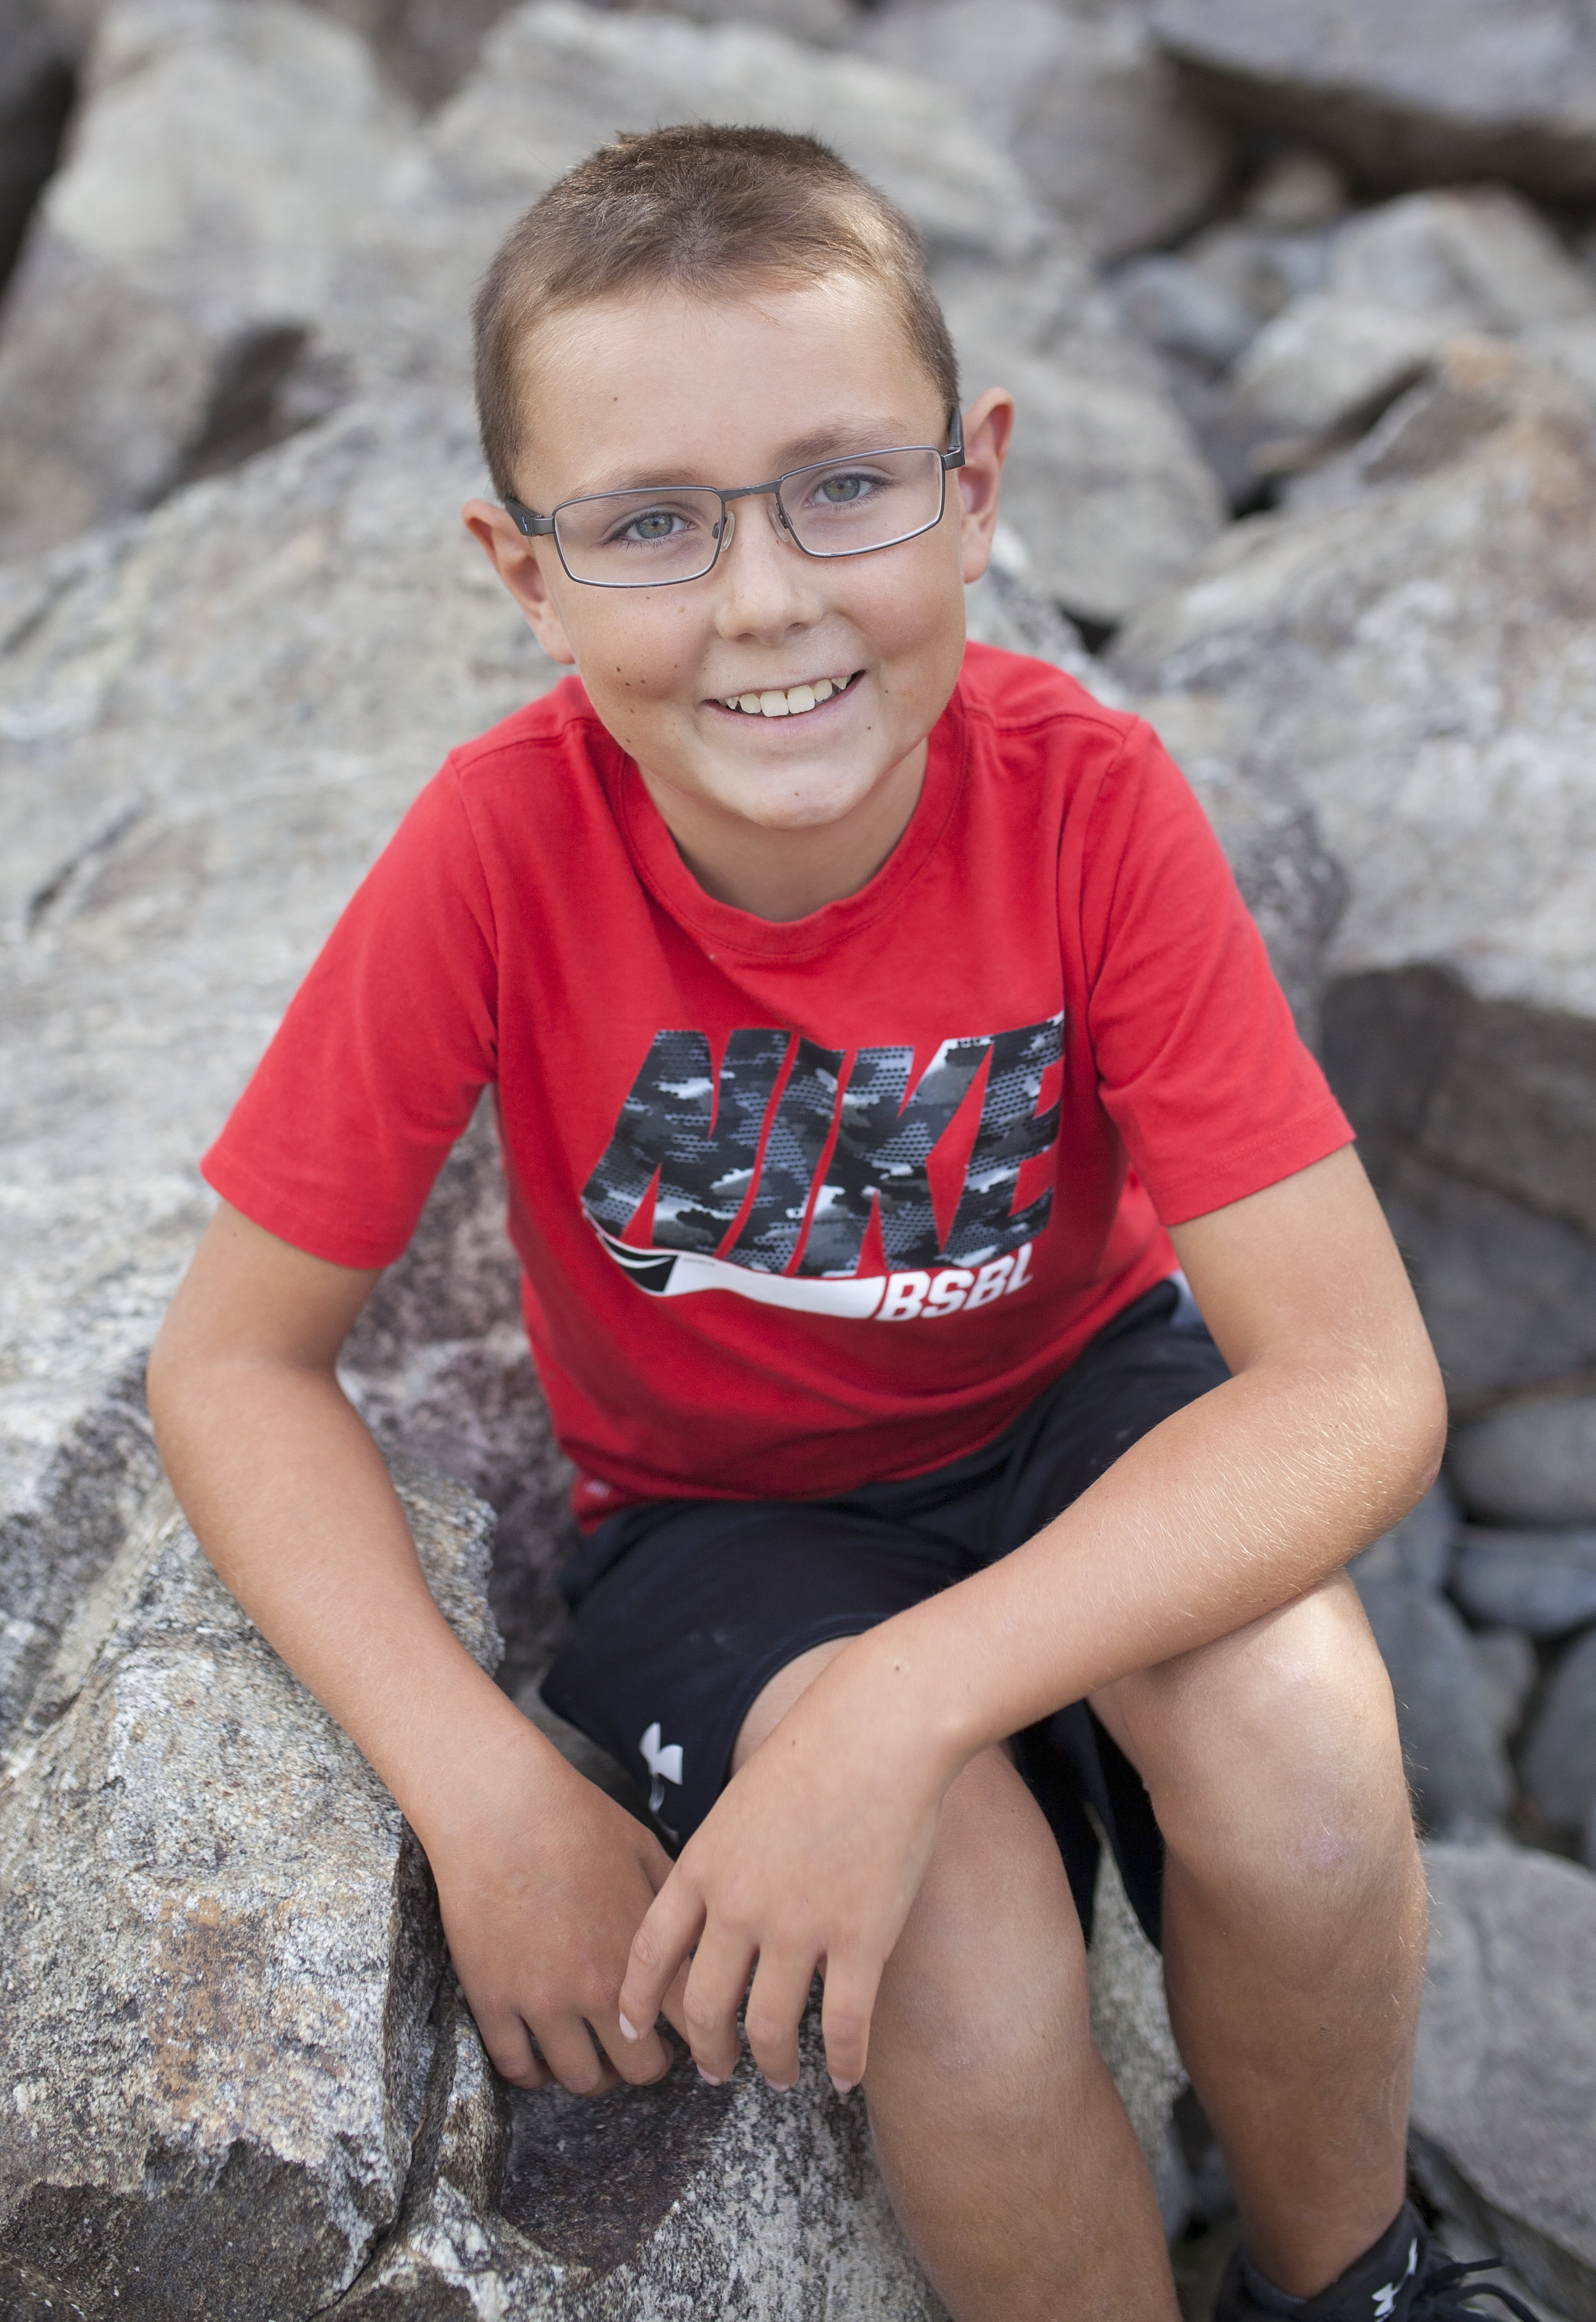 Drew was diagnosed with T cell Acute Lymphoblastic Leukemia diagnosed at age 5.